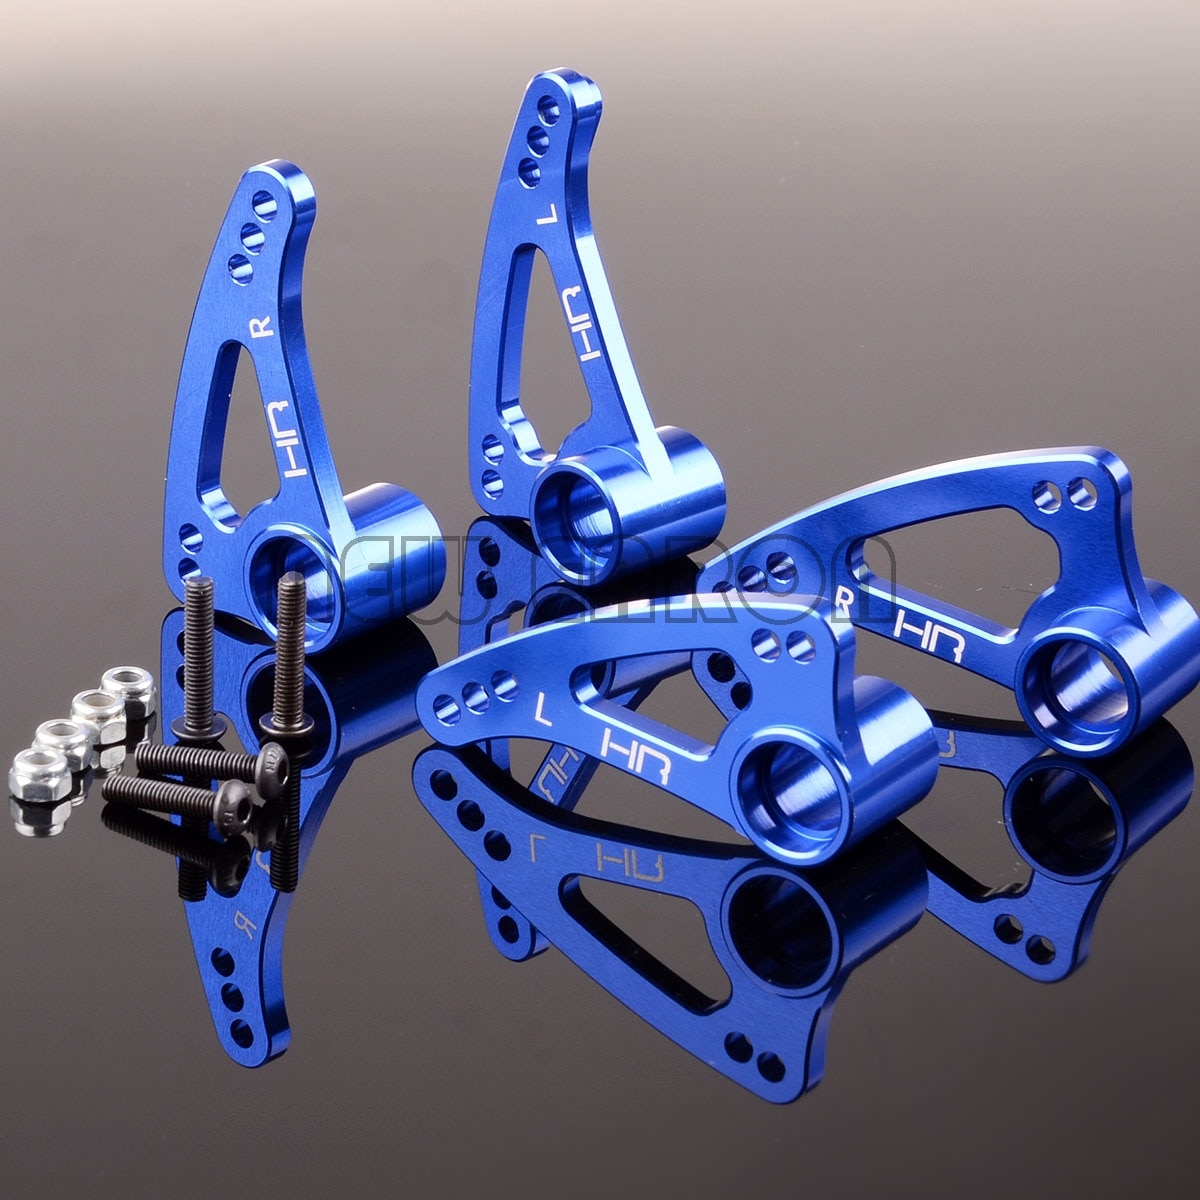 NEW ENRON 5358 Aluminum Front&Rear Multi-Mount Long Travel Rocker Arms for RC CAR Traxxas 1:10 Hot R